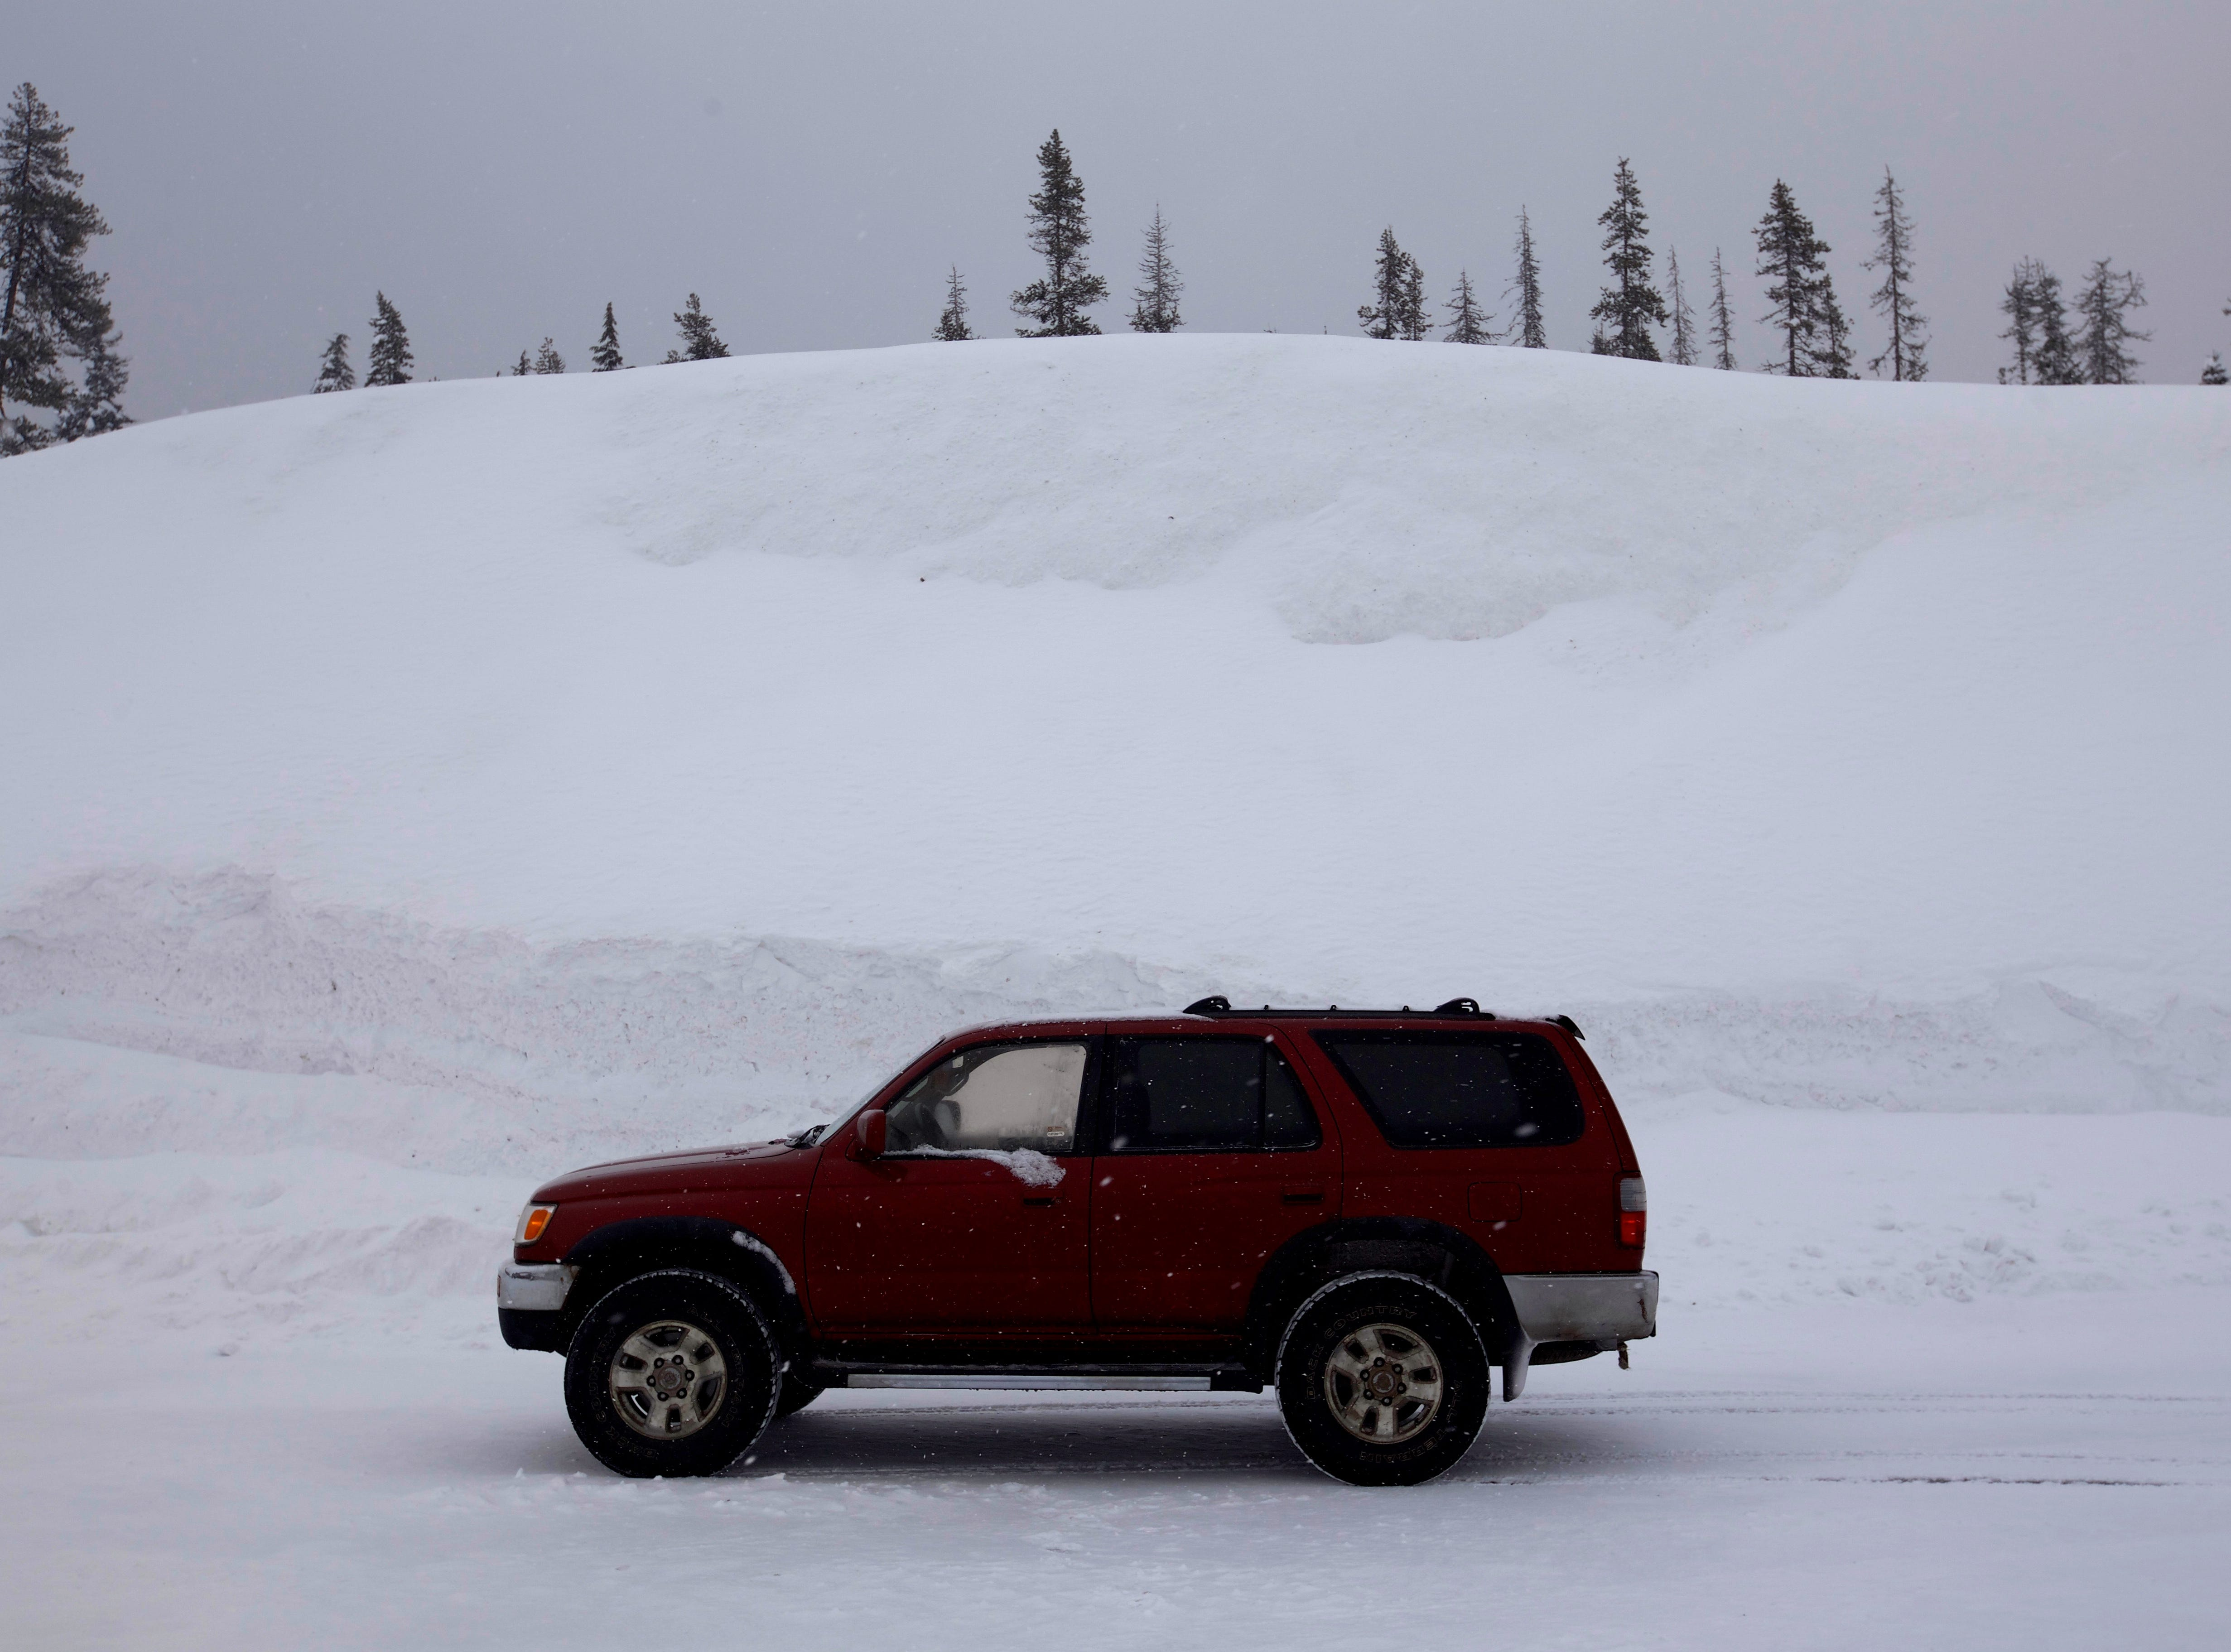 Snow is high at Santiam Pass and Hoodoo Ski Area.